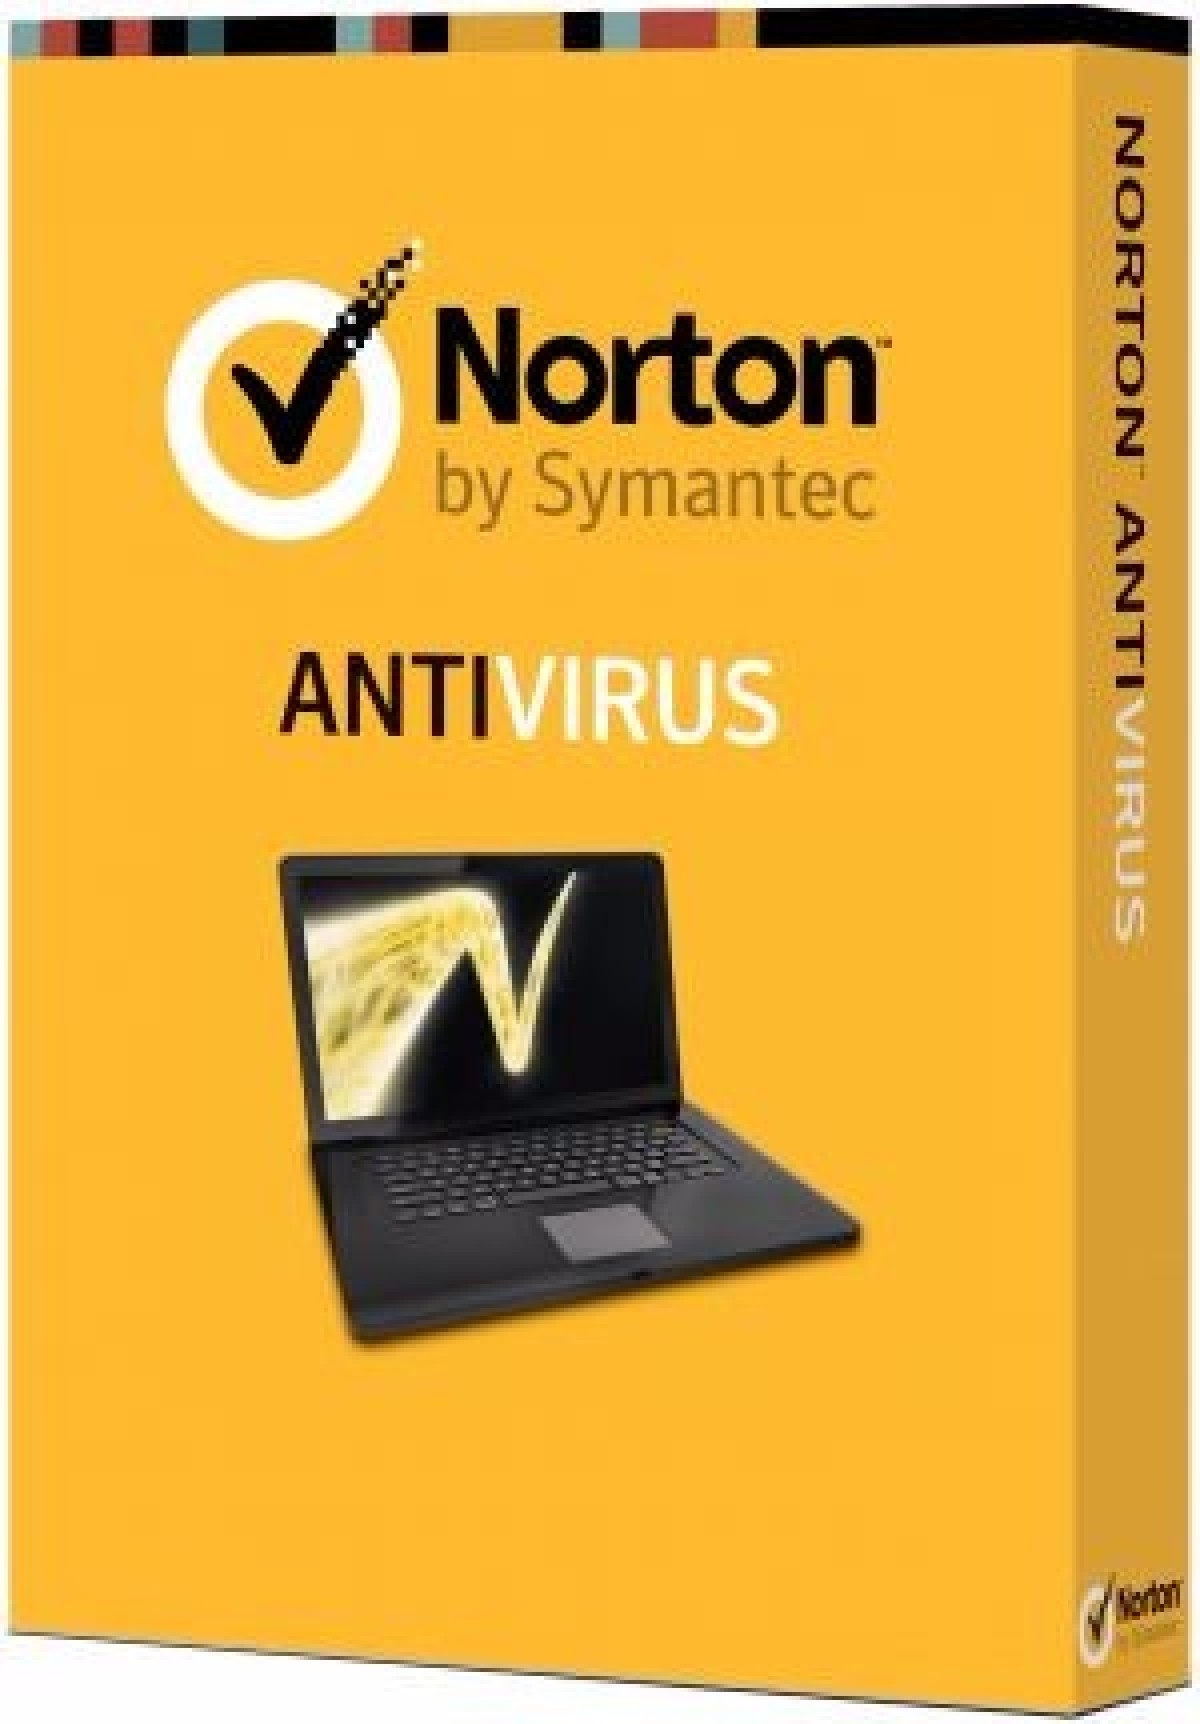 www.norton.com/setup – Steps to uninstall previous versions of Norton setup | free Classified | Free Advertising | free classified ads